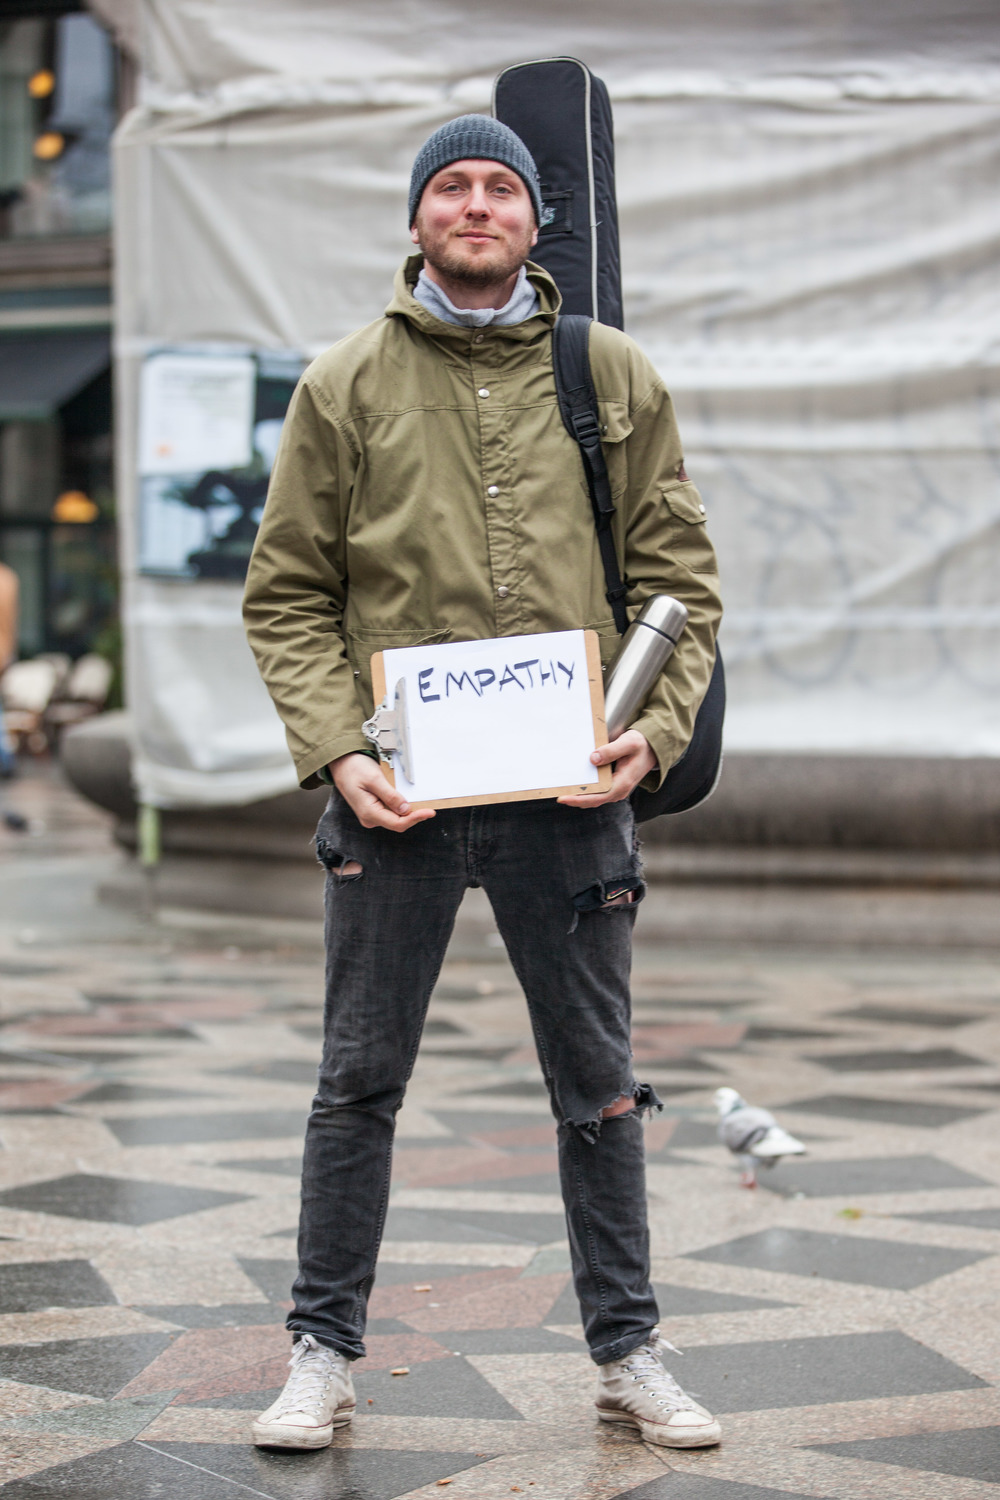 Man holding a sign that says empathy.